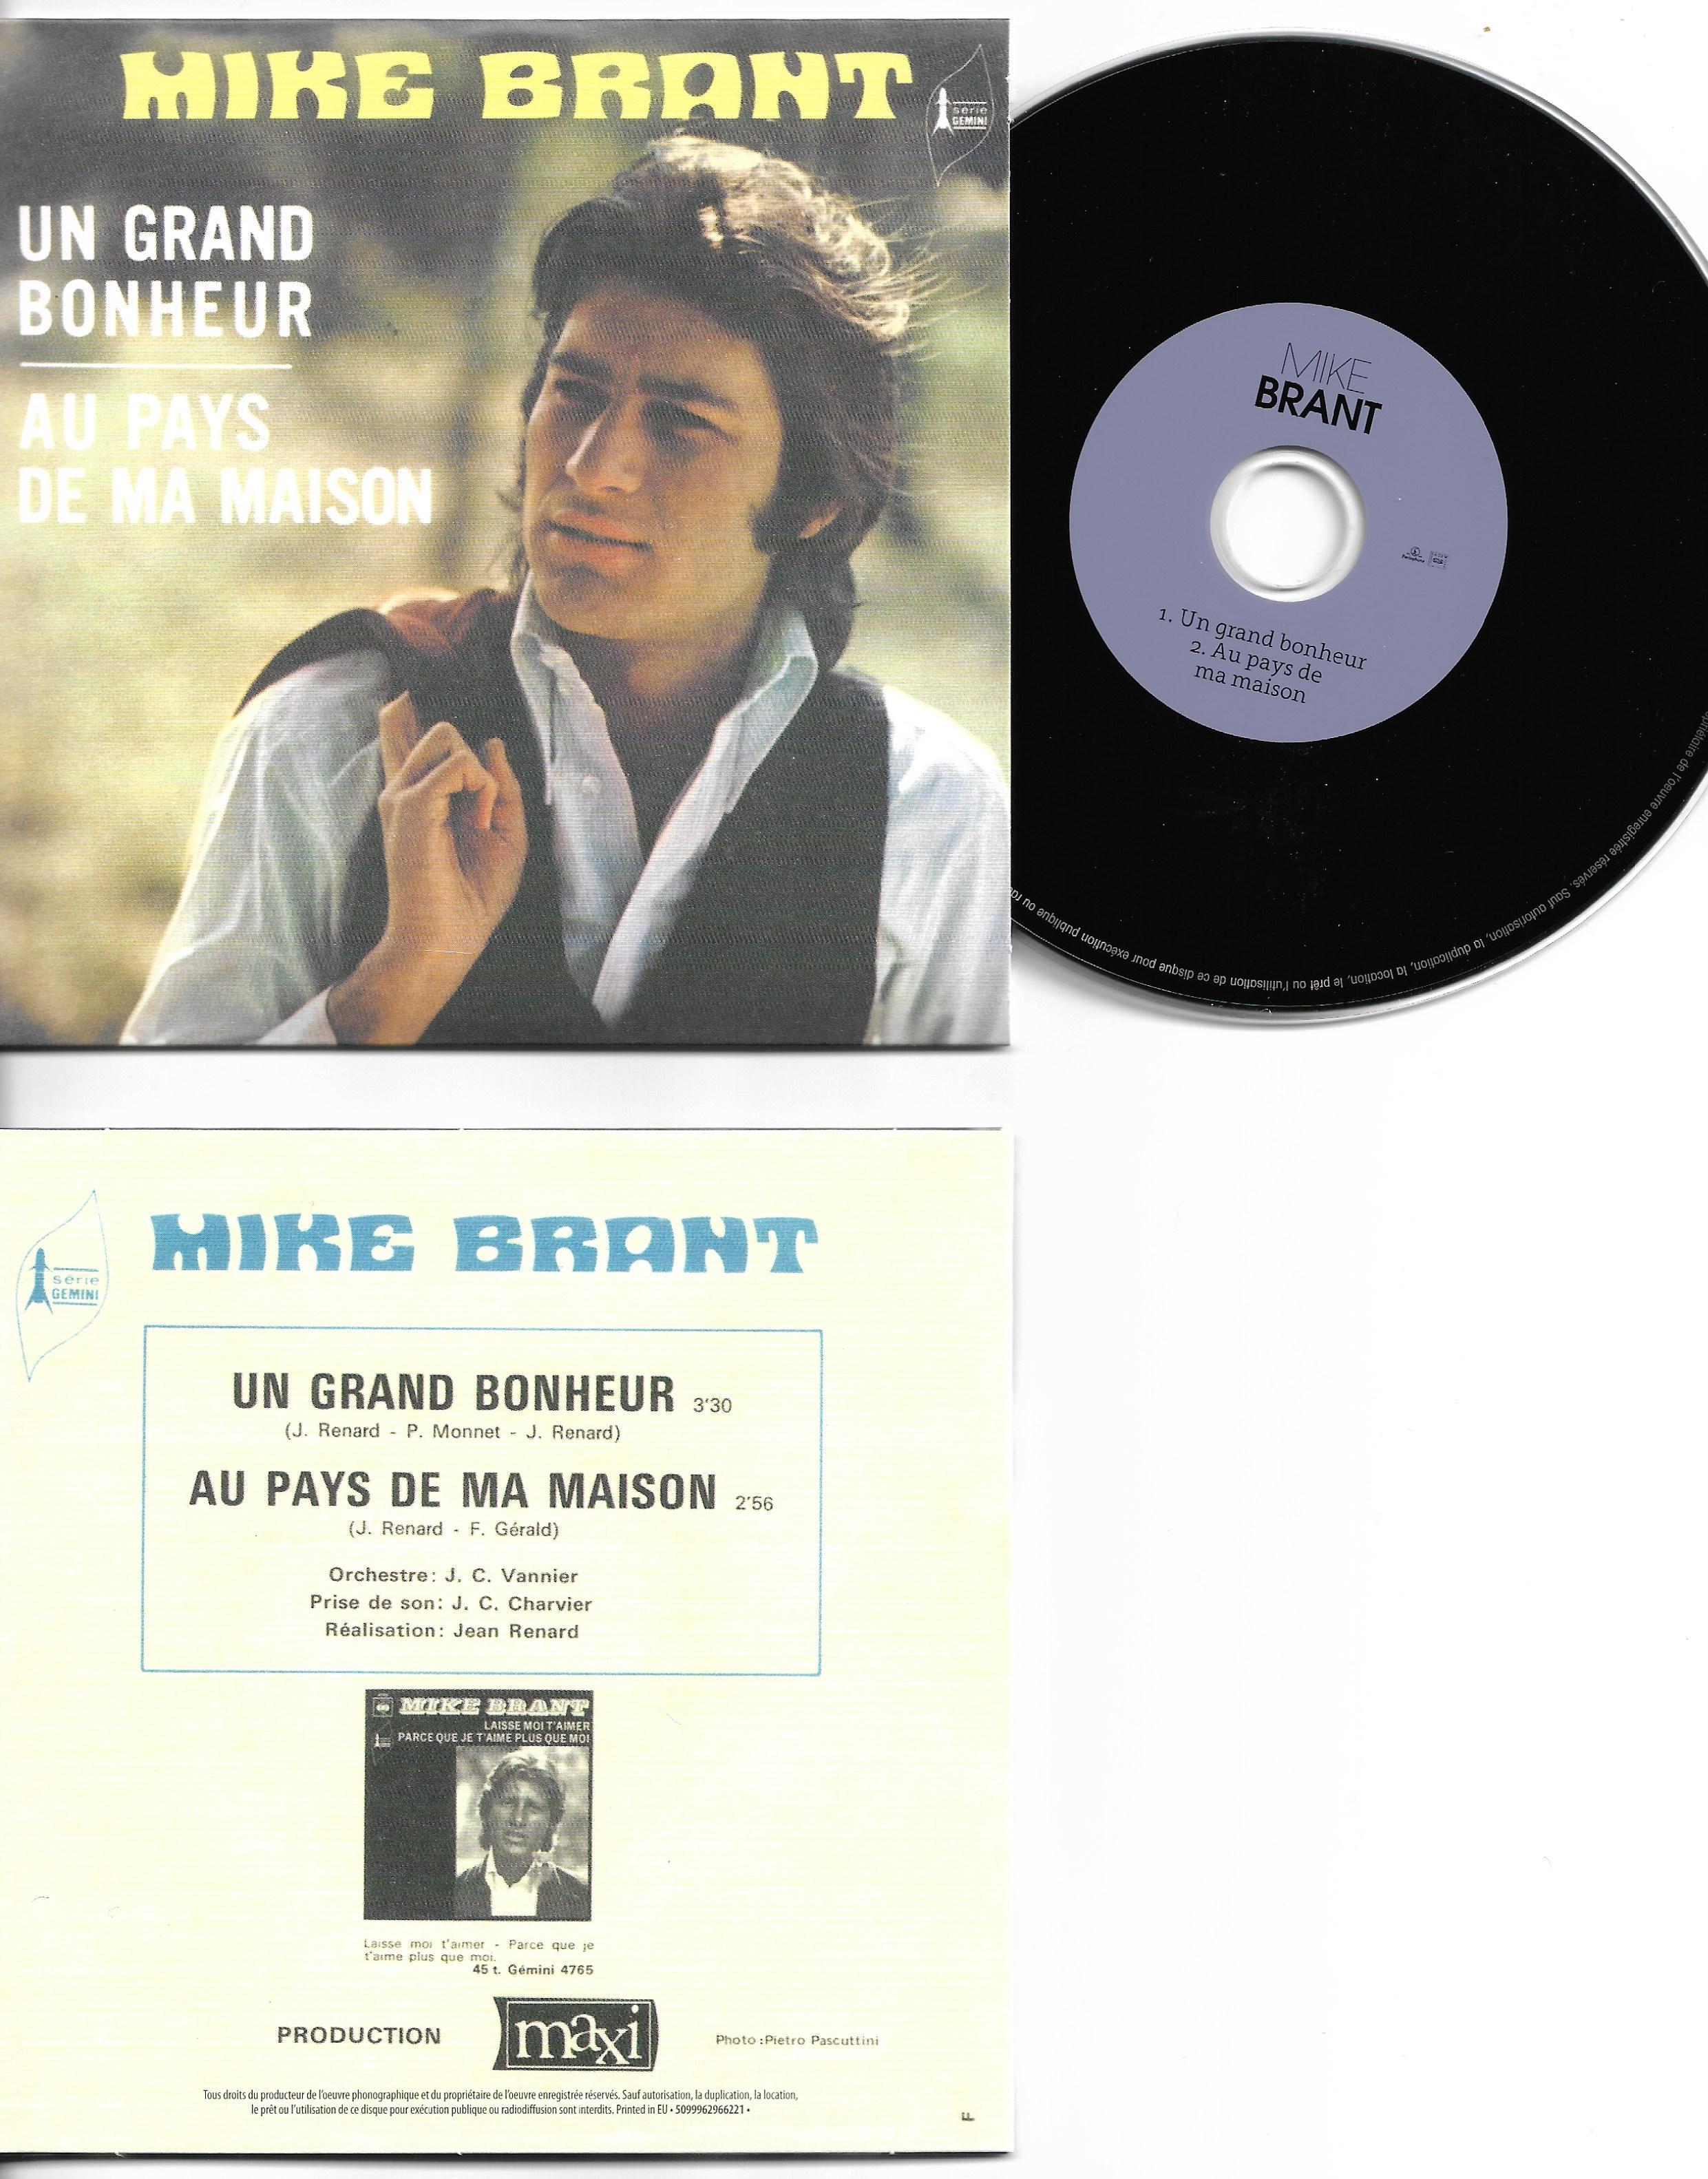 MIKE BRANT - Un grand bonheur 2-TRACK CARD SLEEVE - CD single